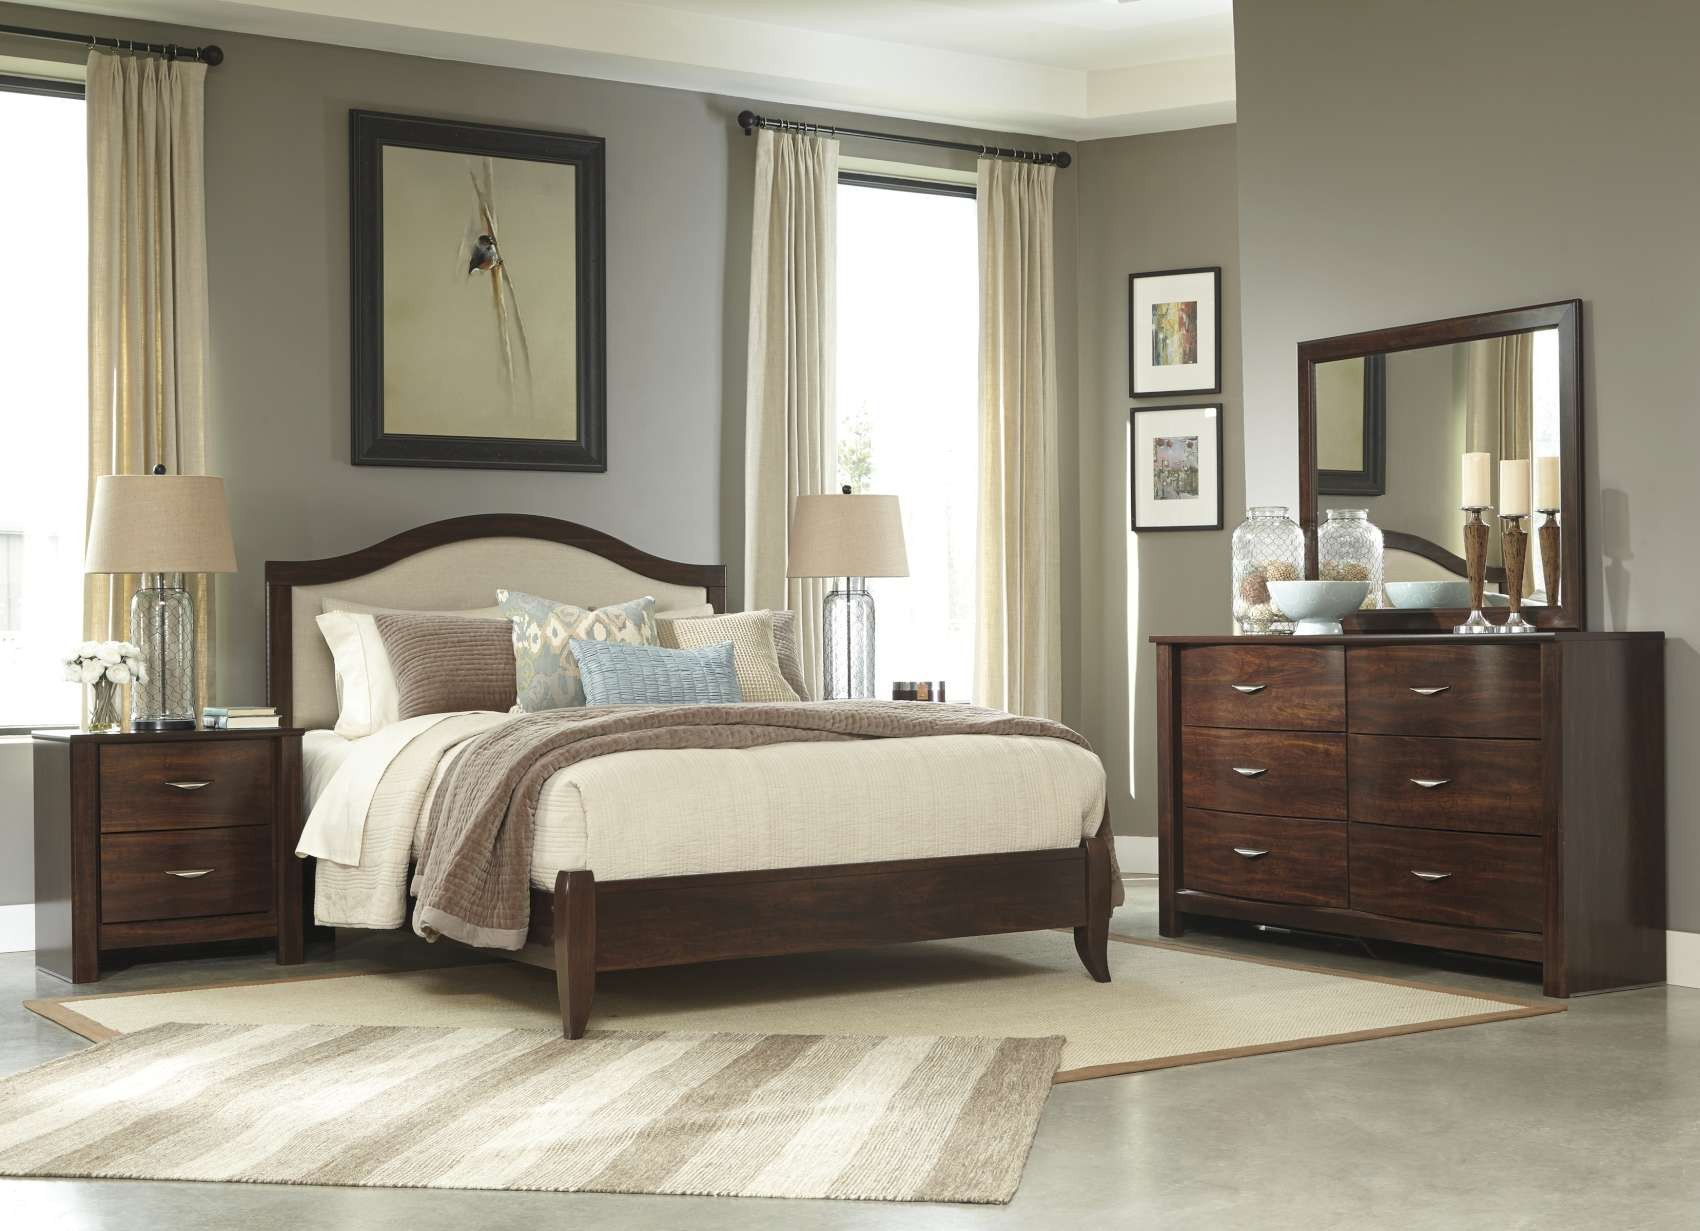 Juararo Queen Bedroom Set New Corraya Medium Brown Bedroom Collection B428